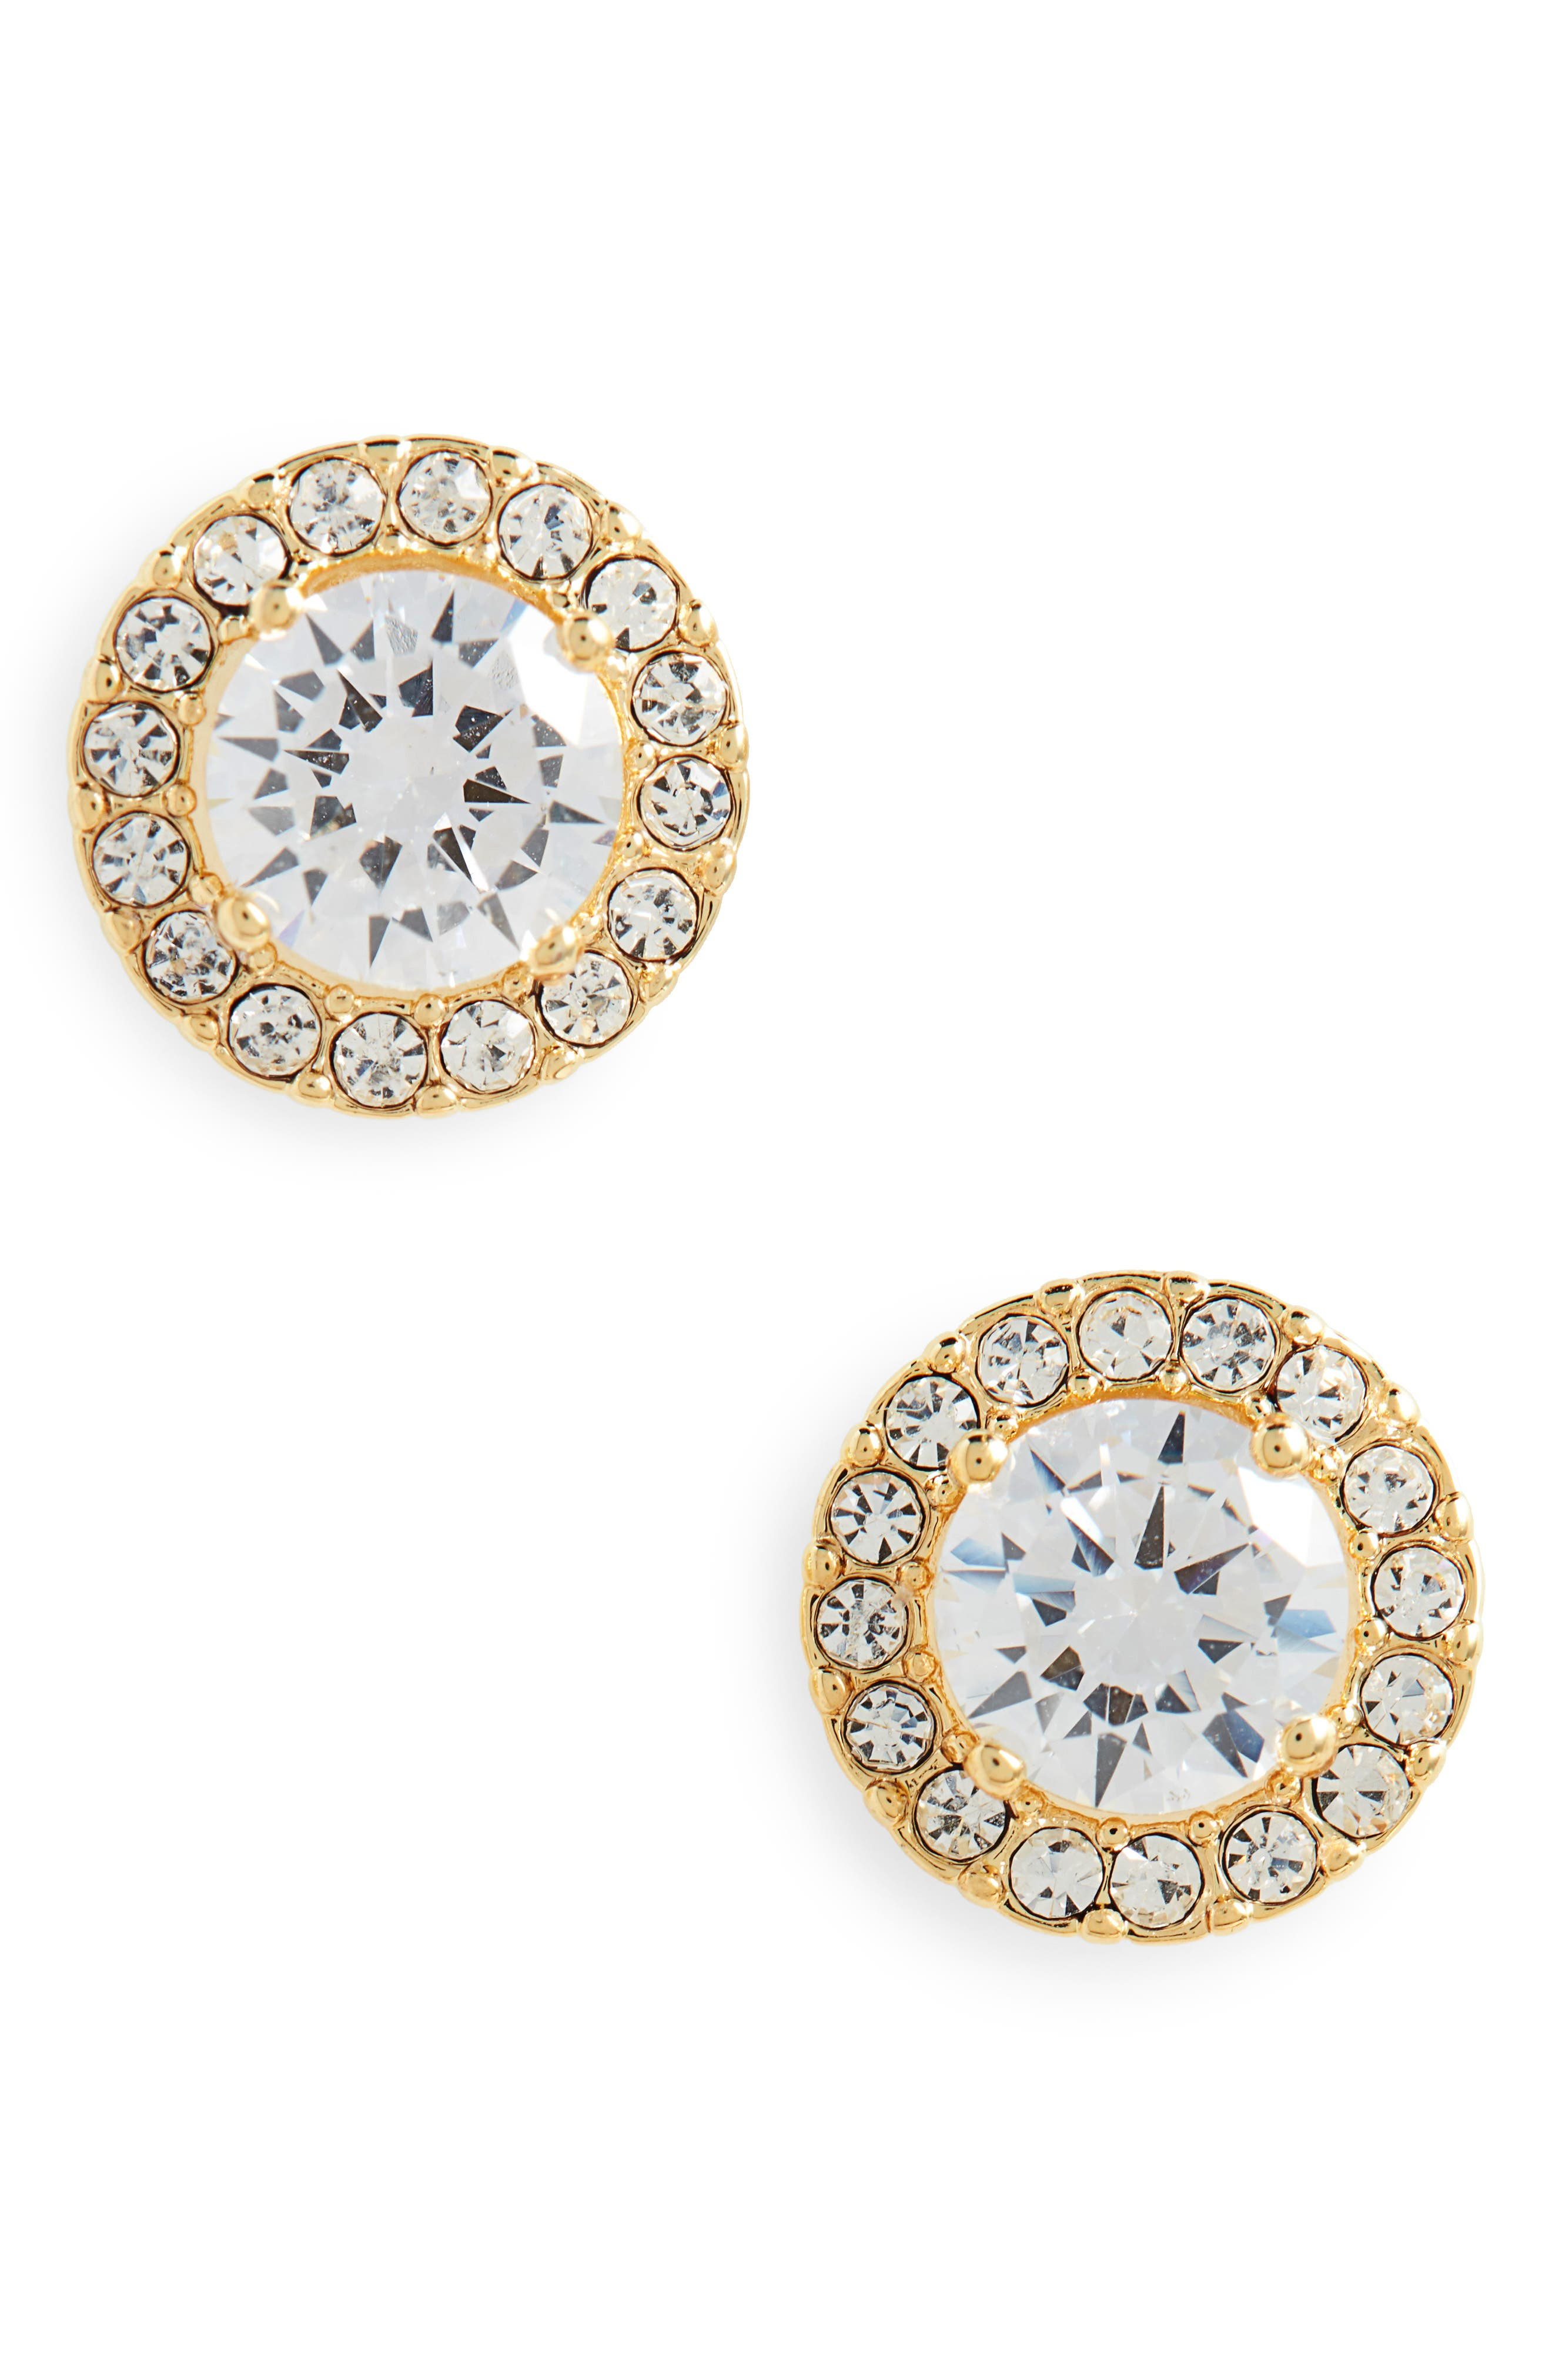 Halo Cubic Zirconia Stud Earrings,                             Main thumbnail 1, color,                             CLEAR- GOLD